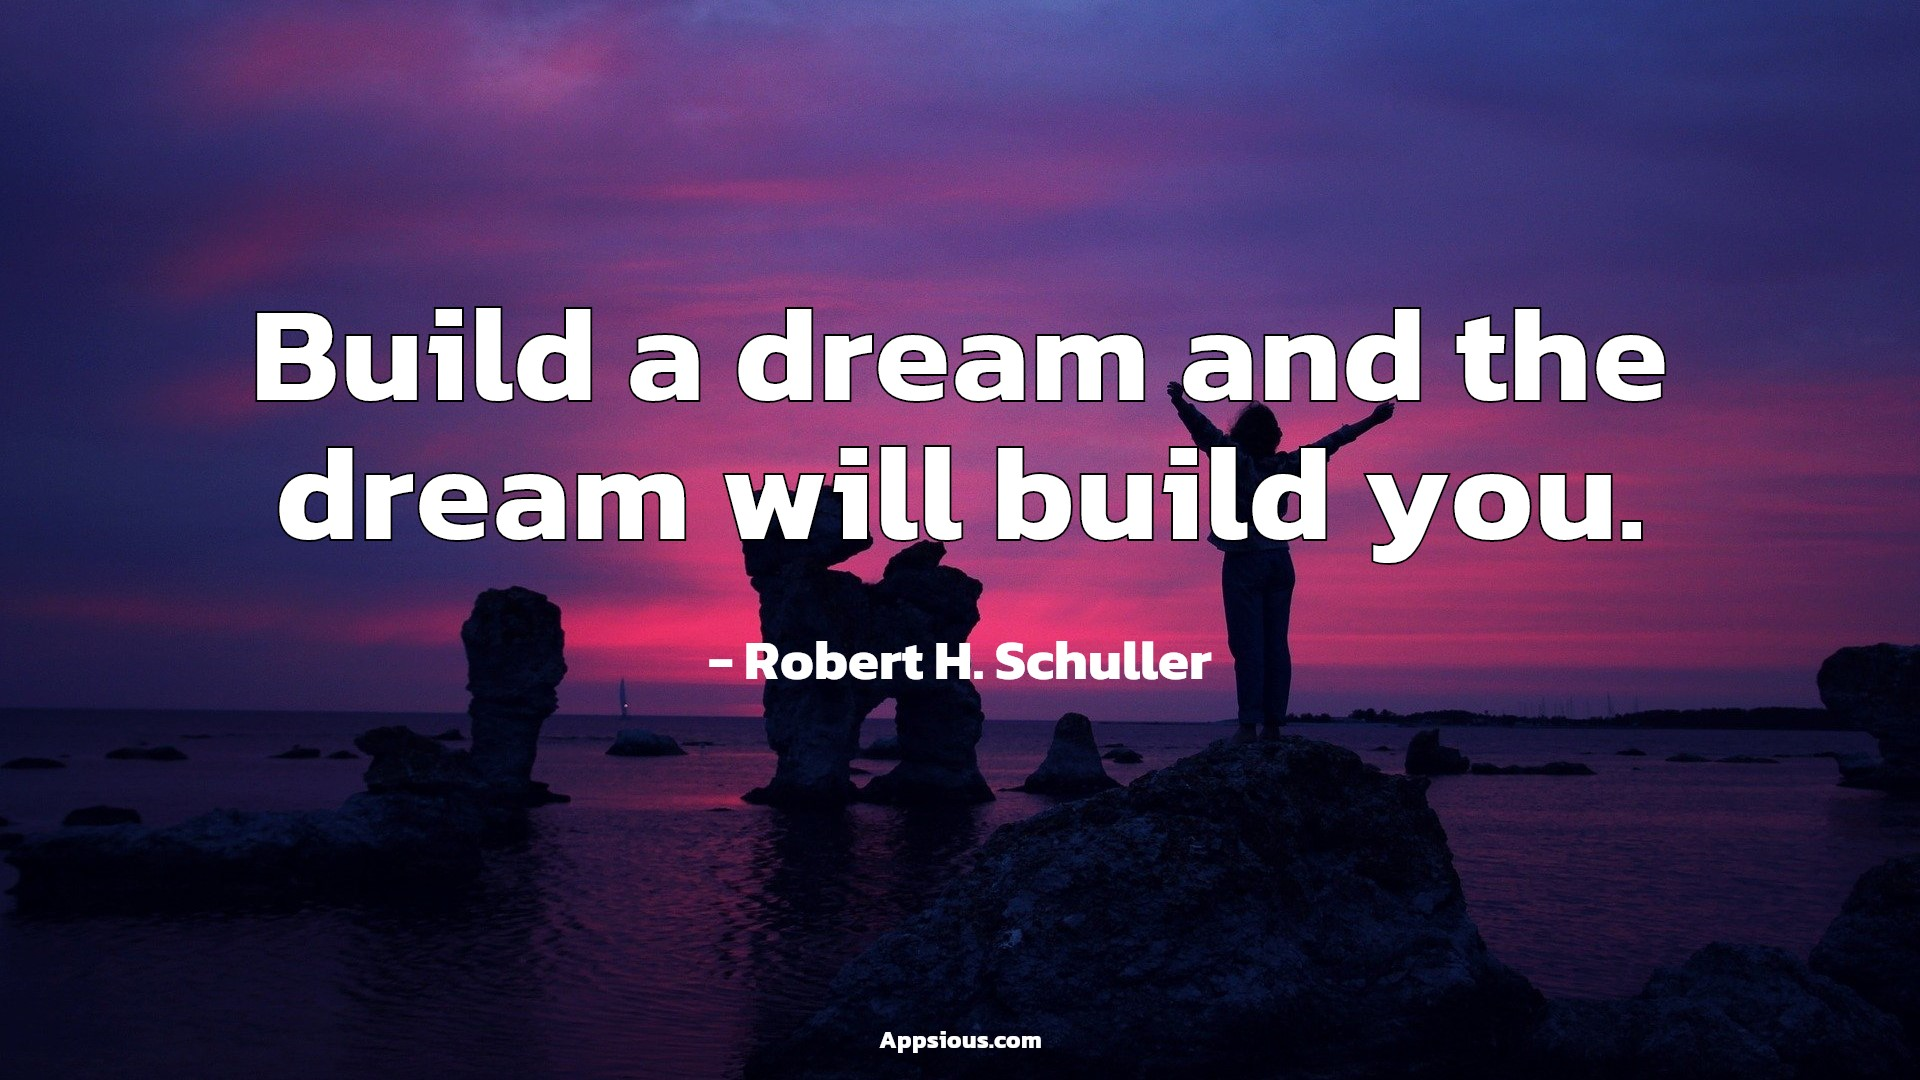 Build a dream and the dream will build you.